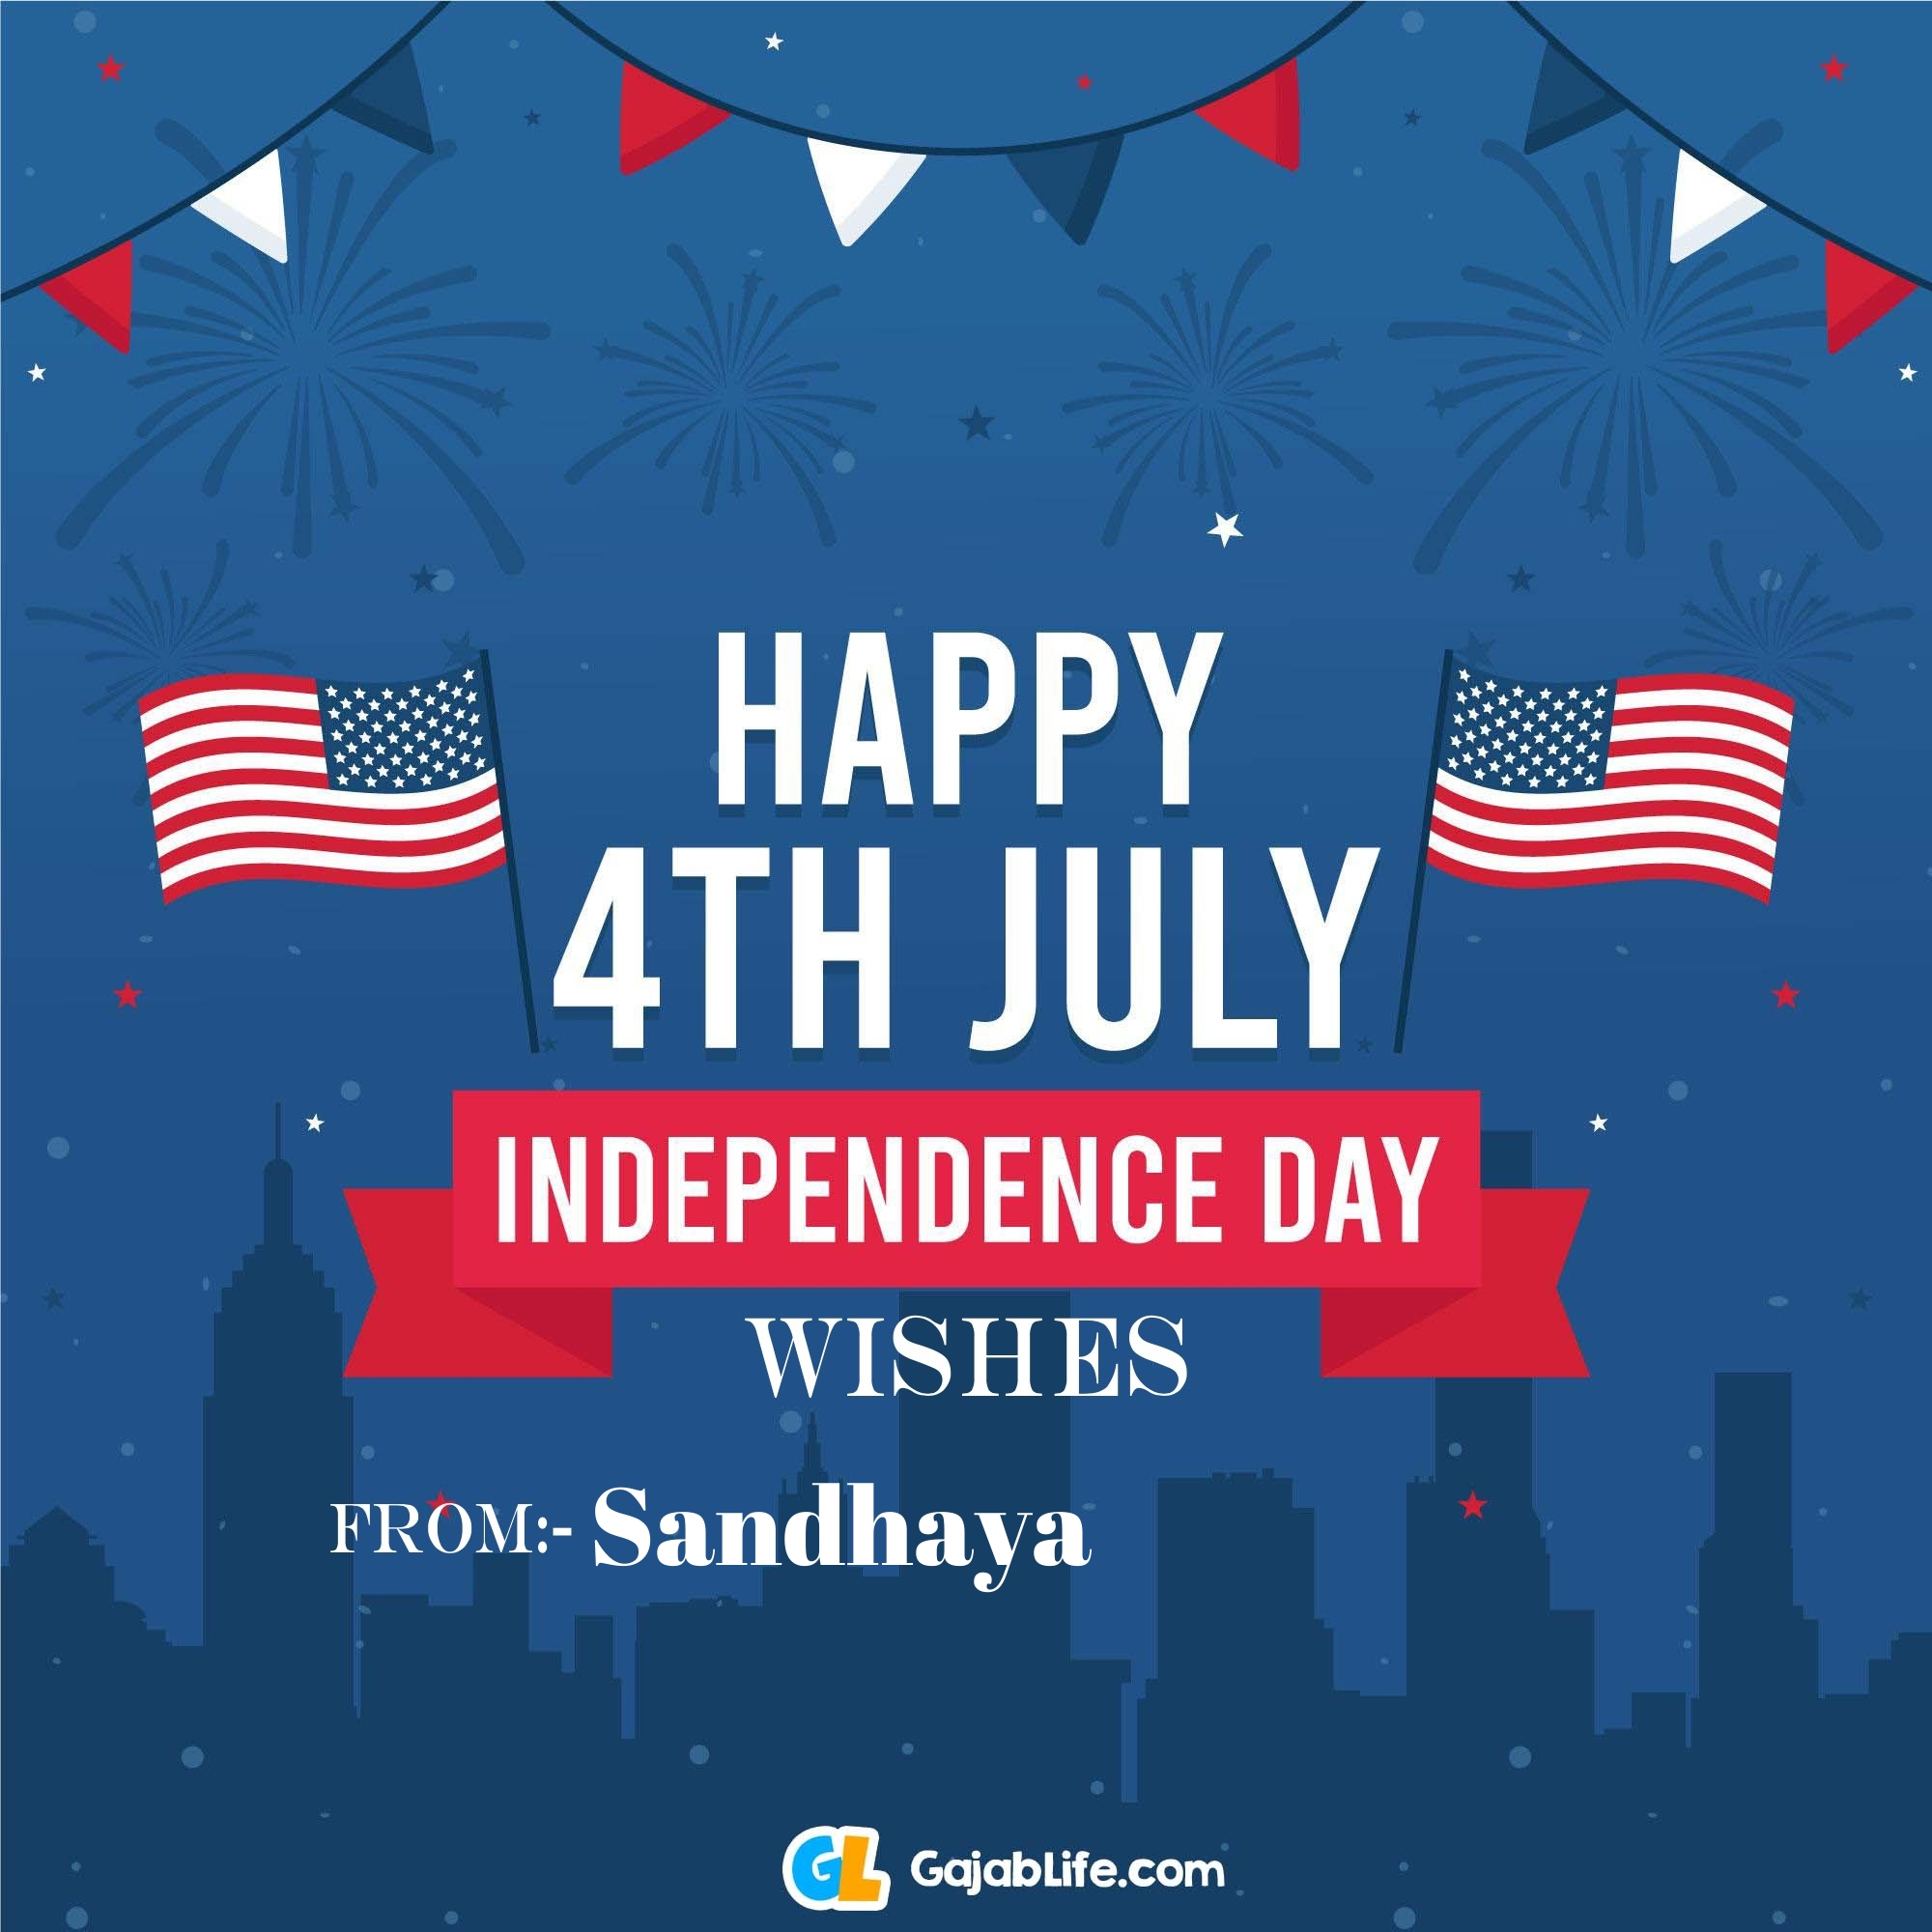 Sandhaya happy independence day united states of america images